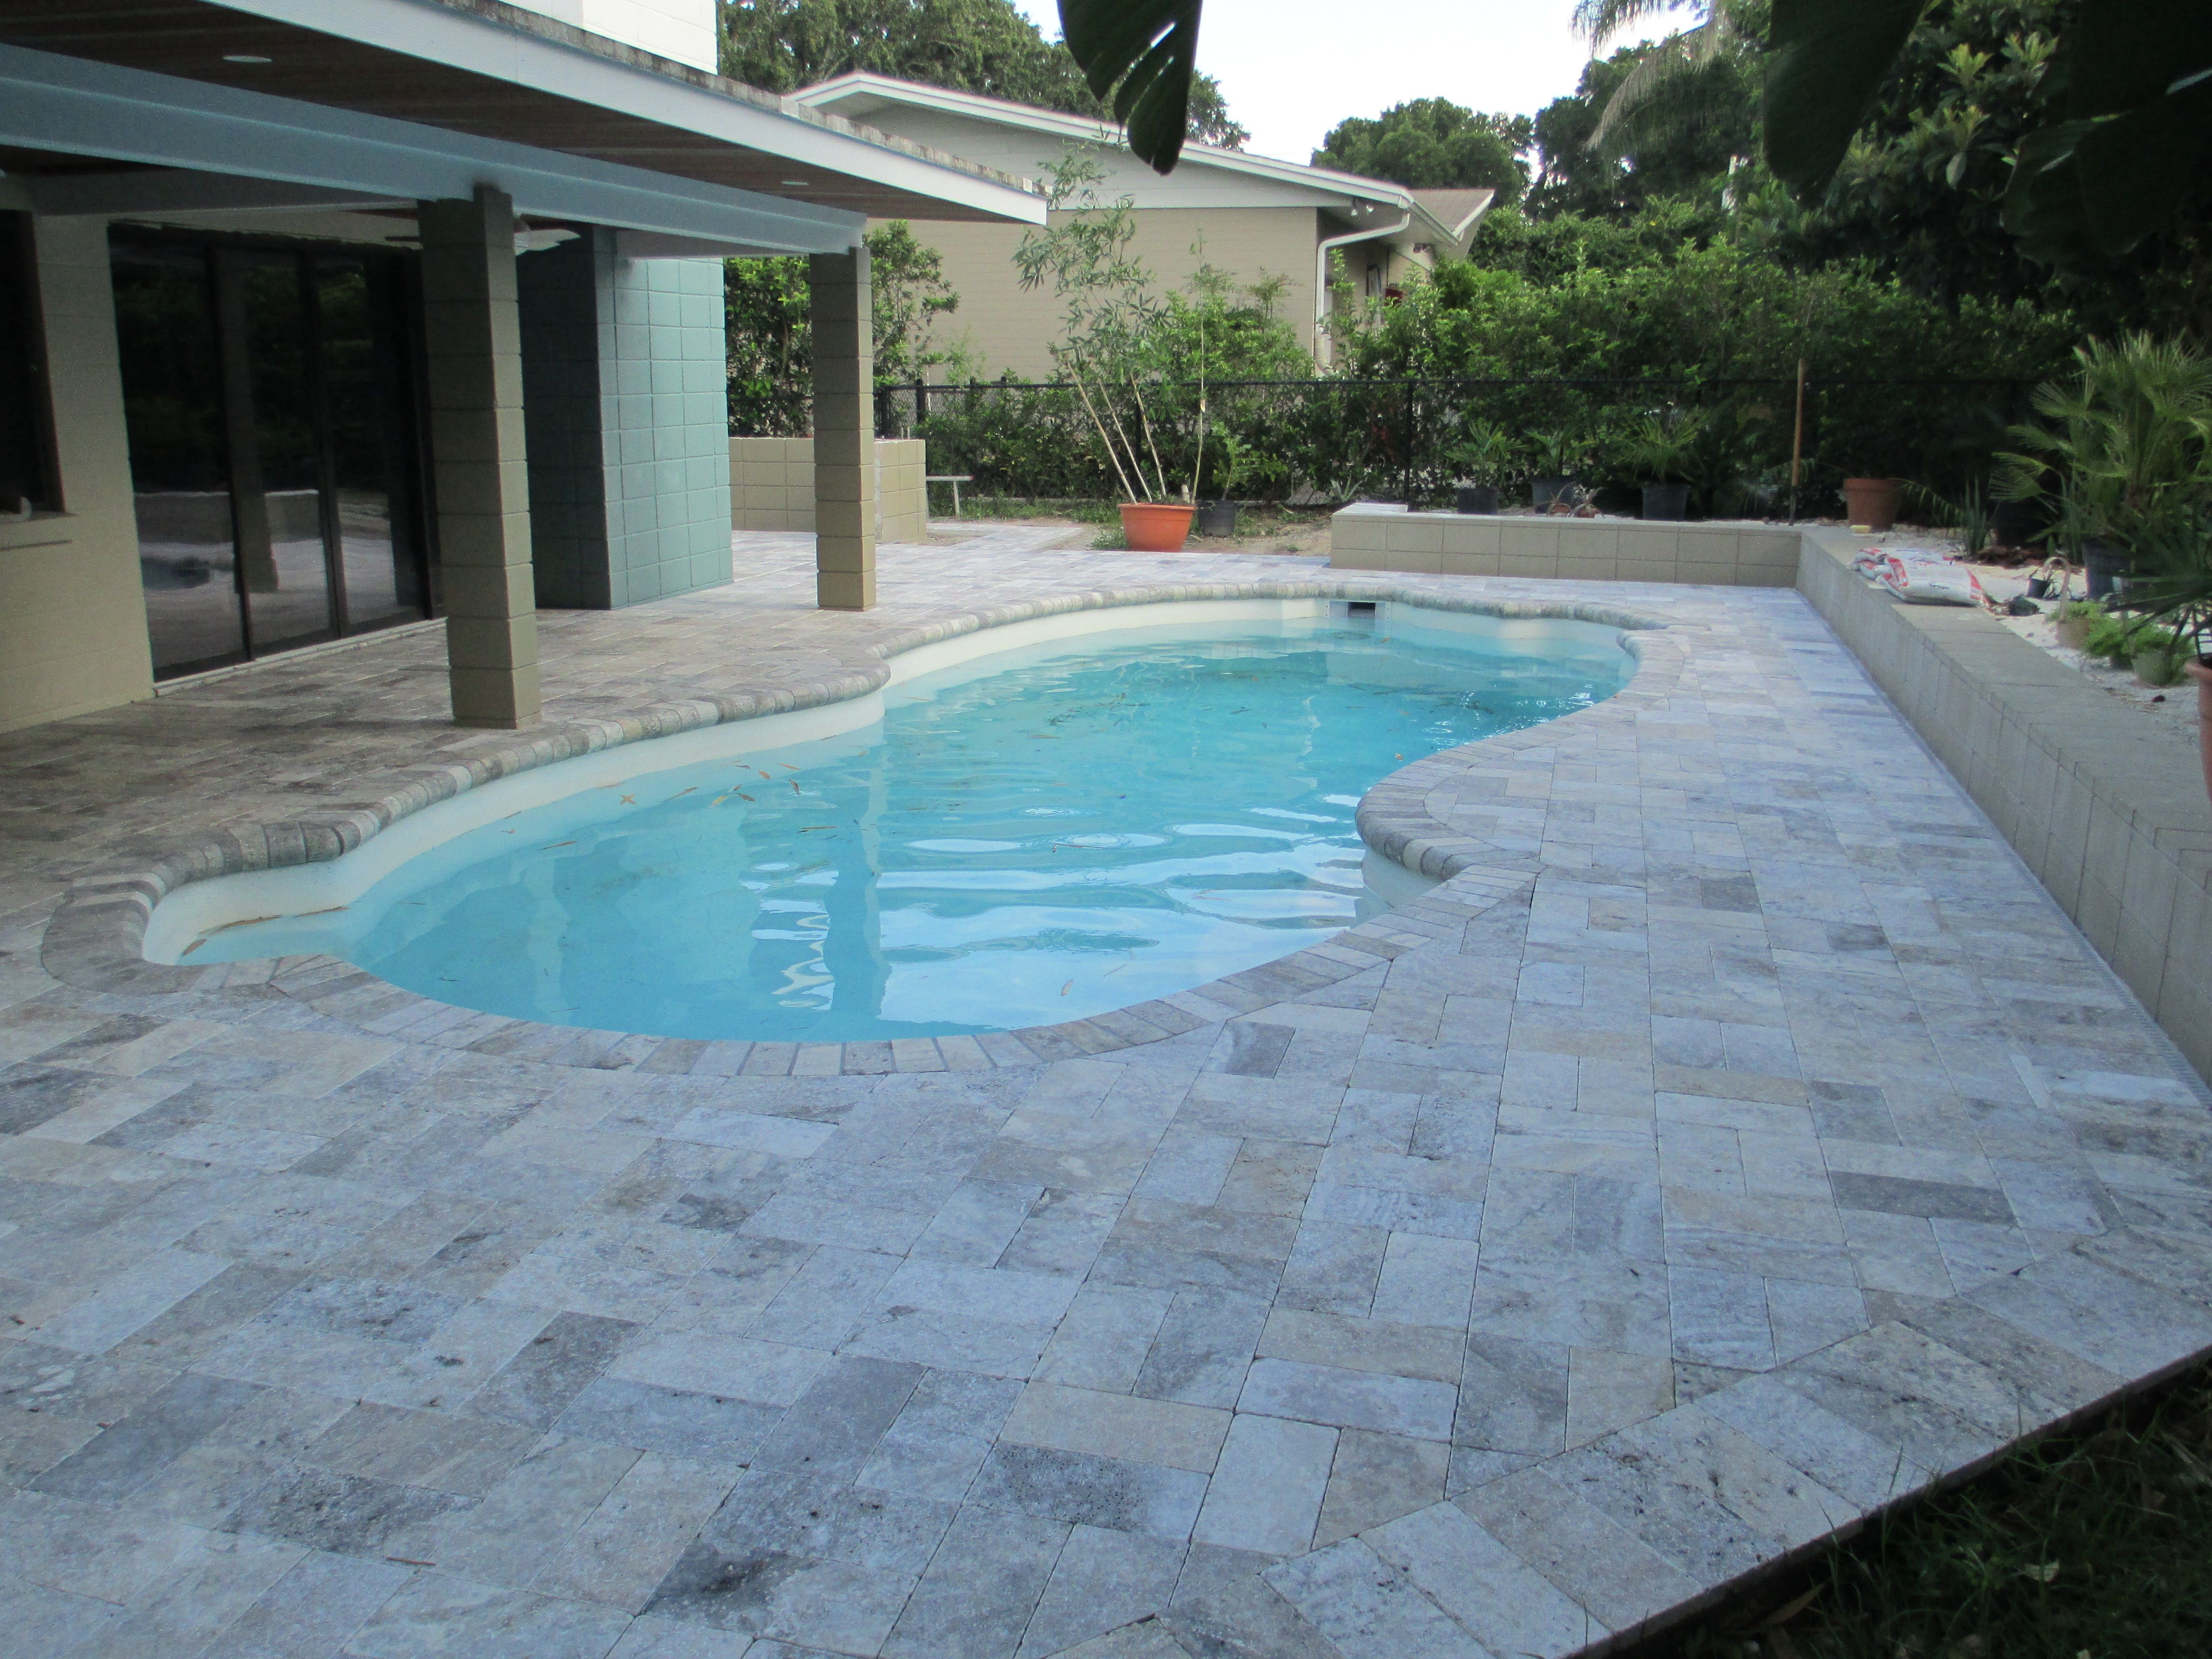 Painting of Falling in Love with Travertine Pavers Pool